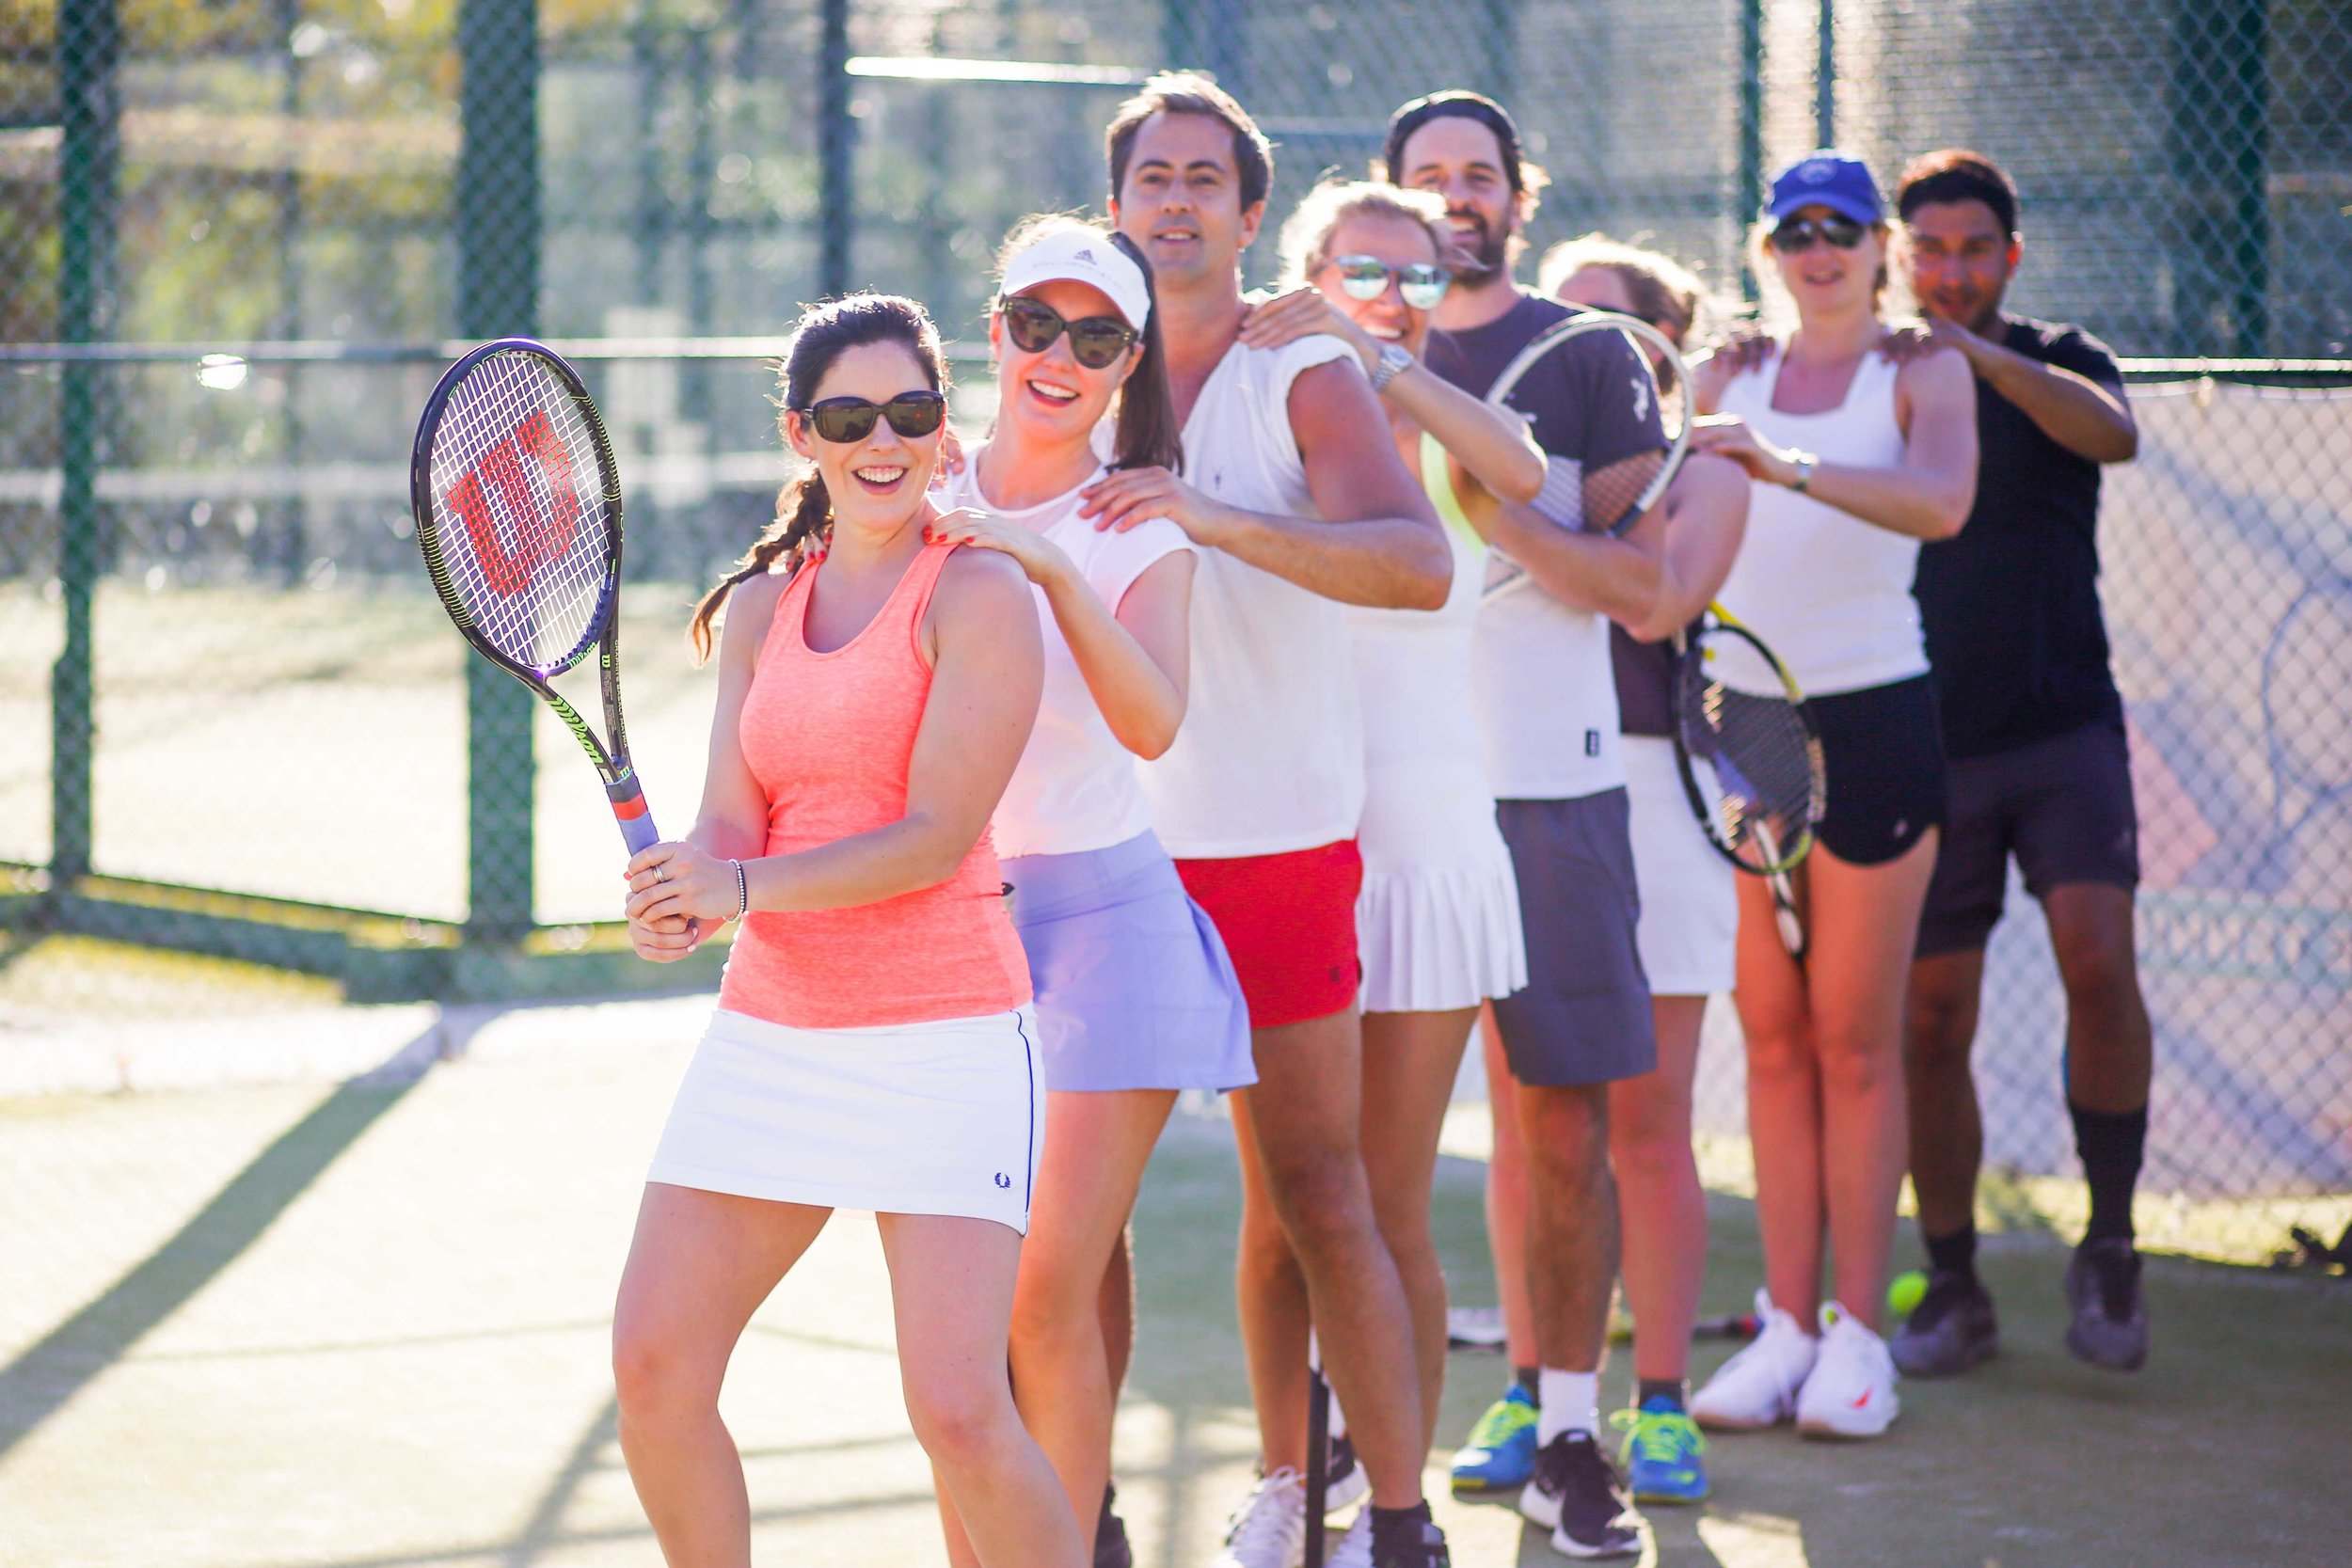 - adult coaching for all standards and ages including the best workout you can have on a tennis court with cardio tennis!All sessions are run by lta licensed coaches with years of playing and coaching experience.please click on 'book' button to find out all prices and more information